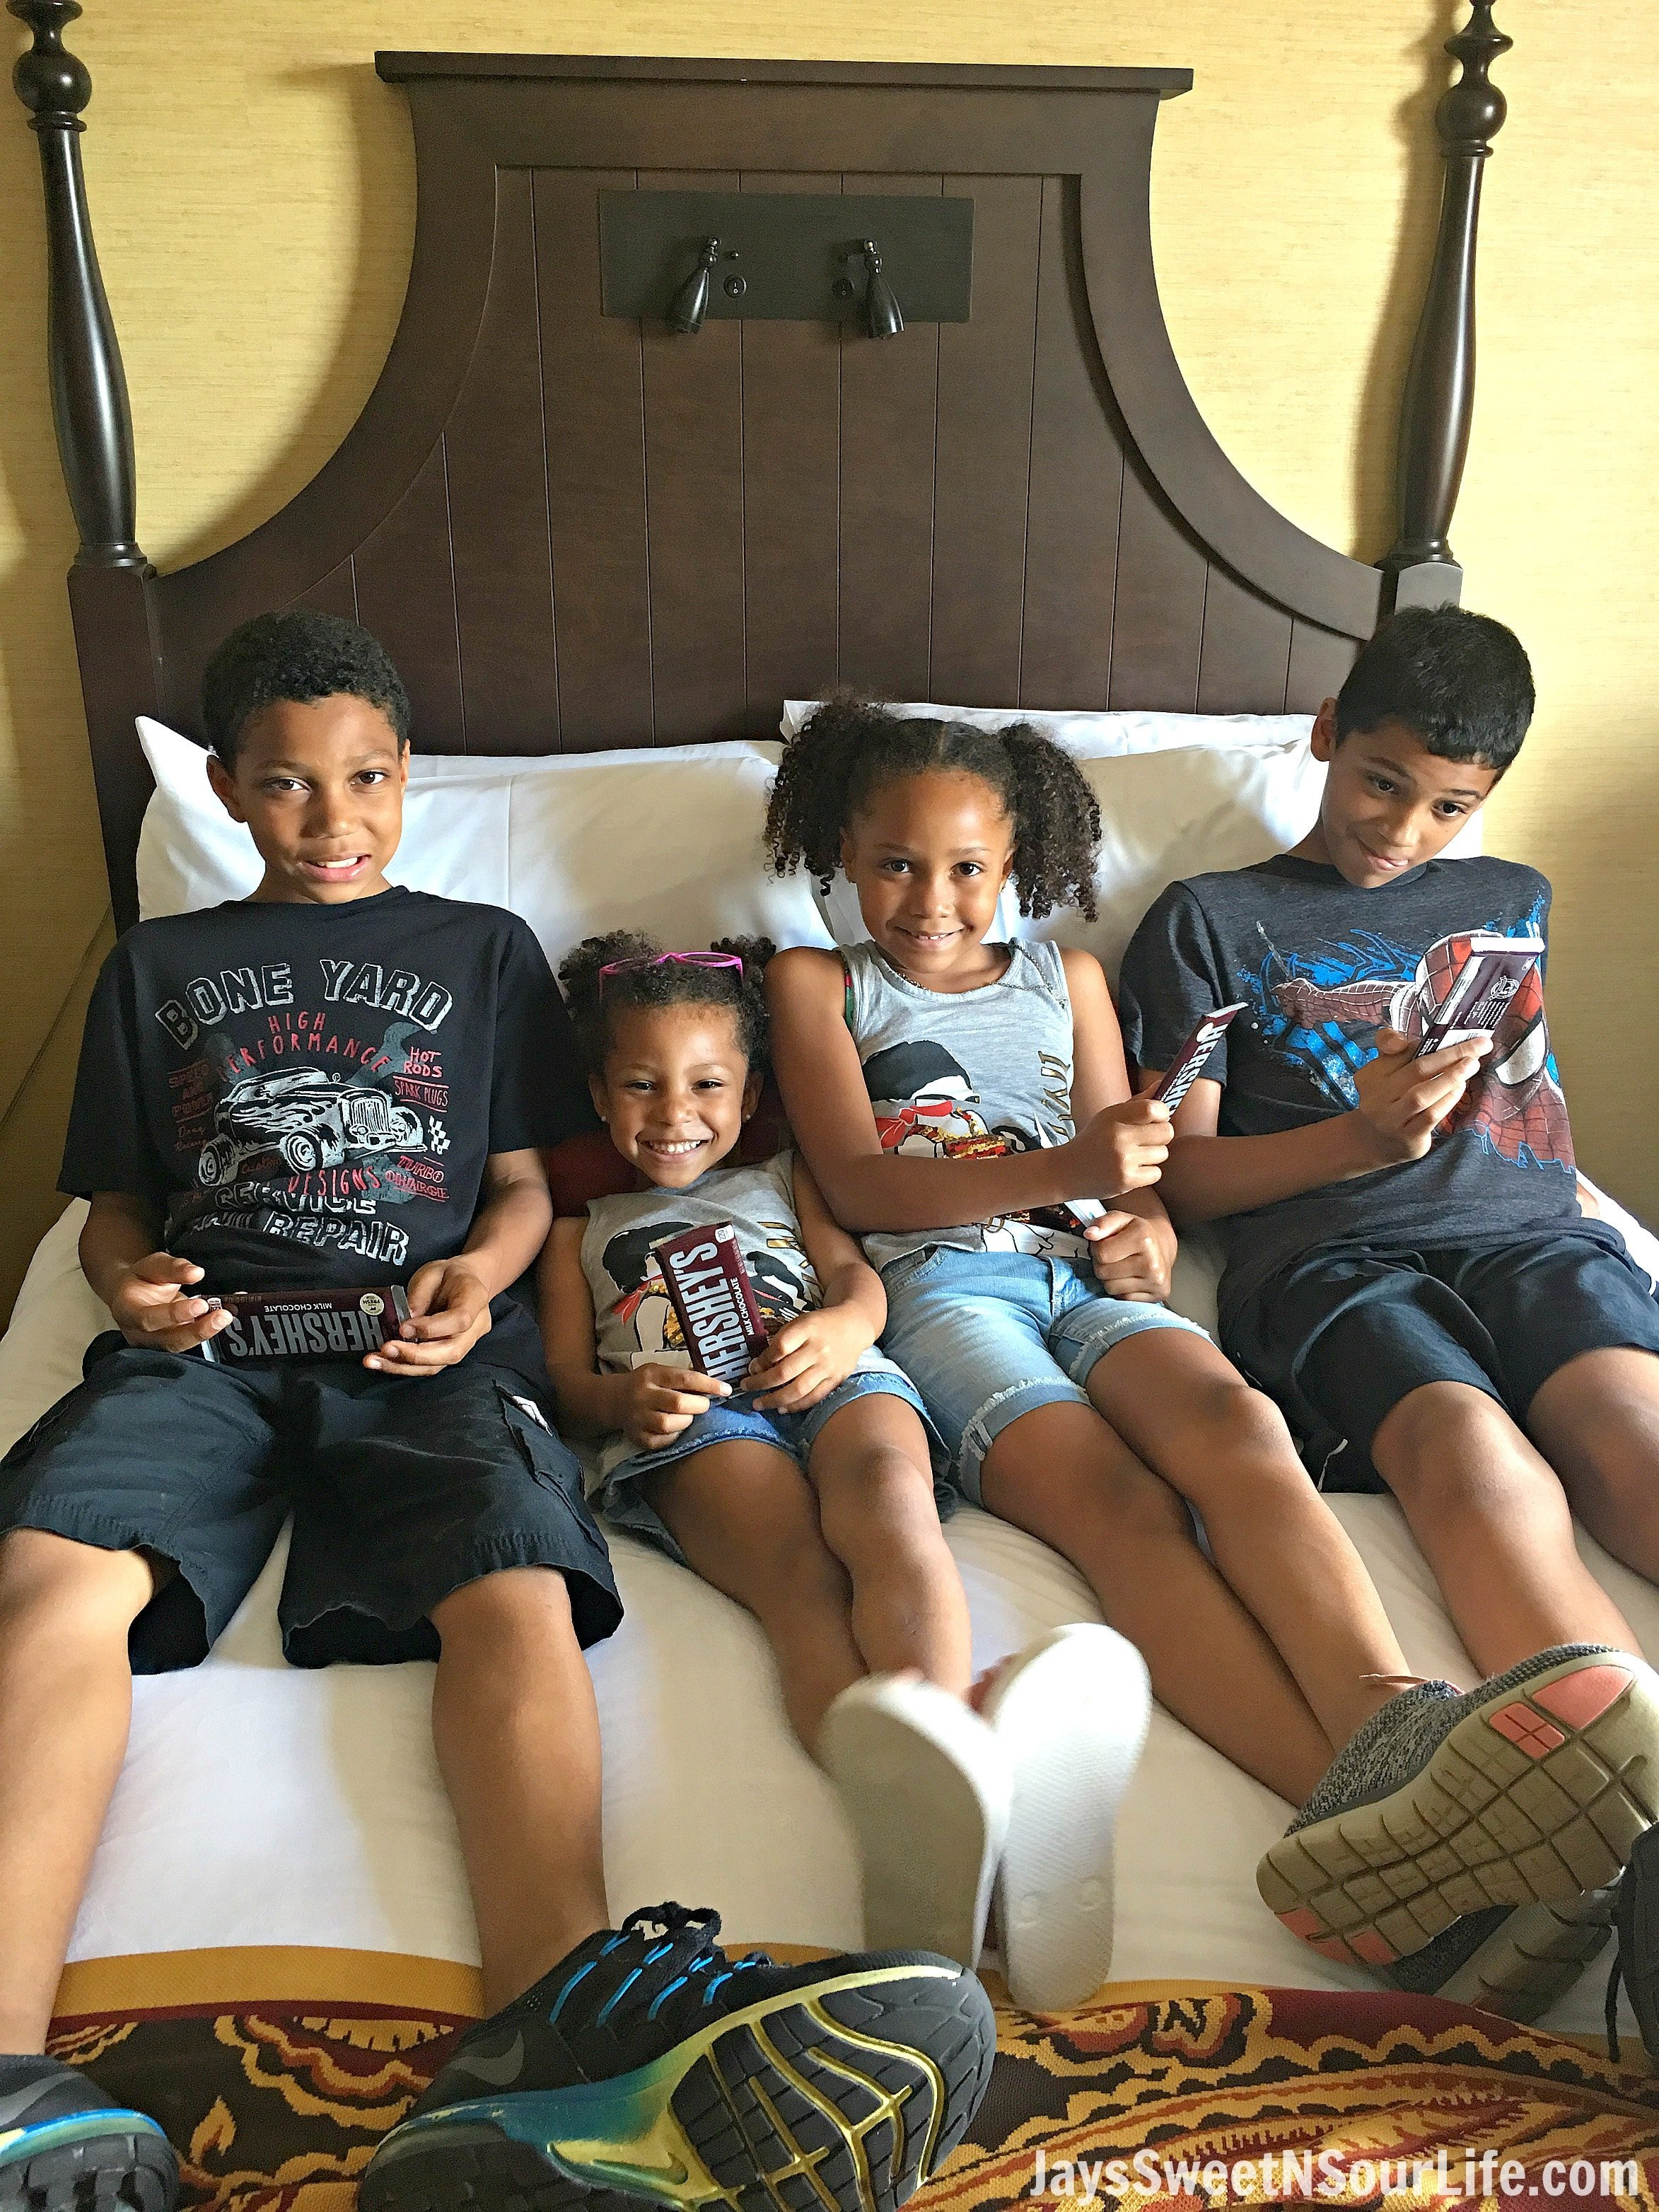 Top 10 Things To Do At The Hershey Lodge